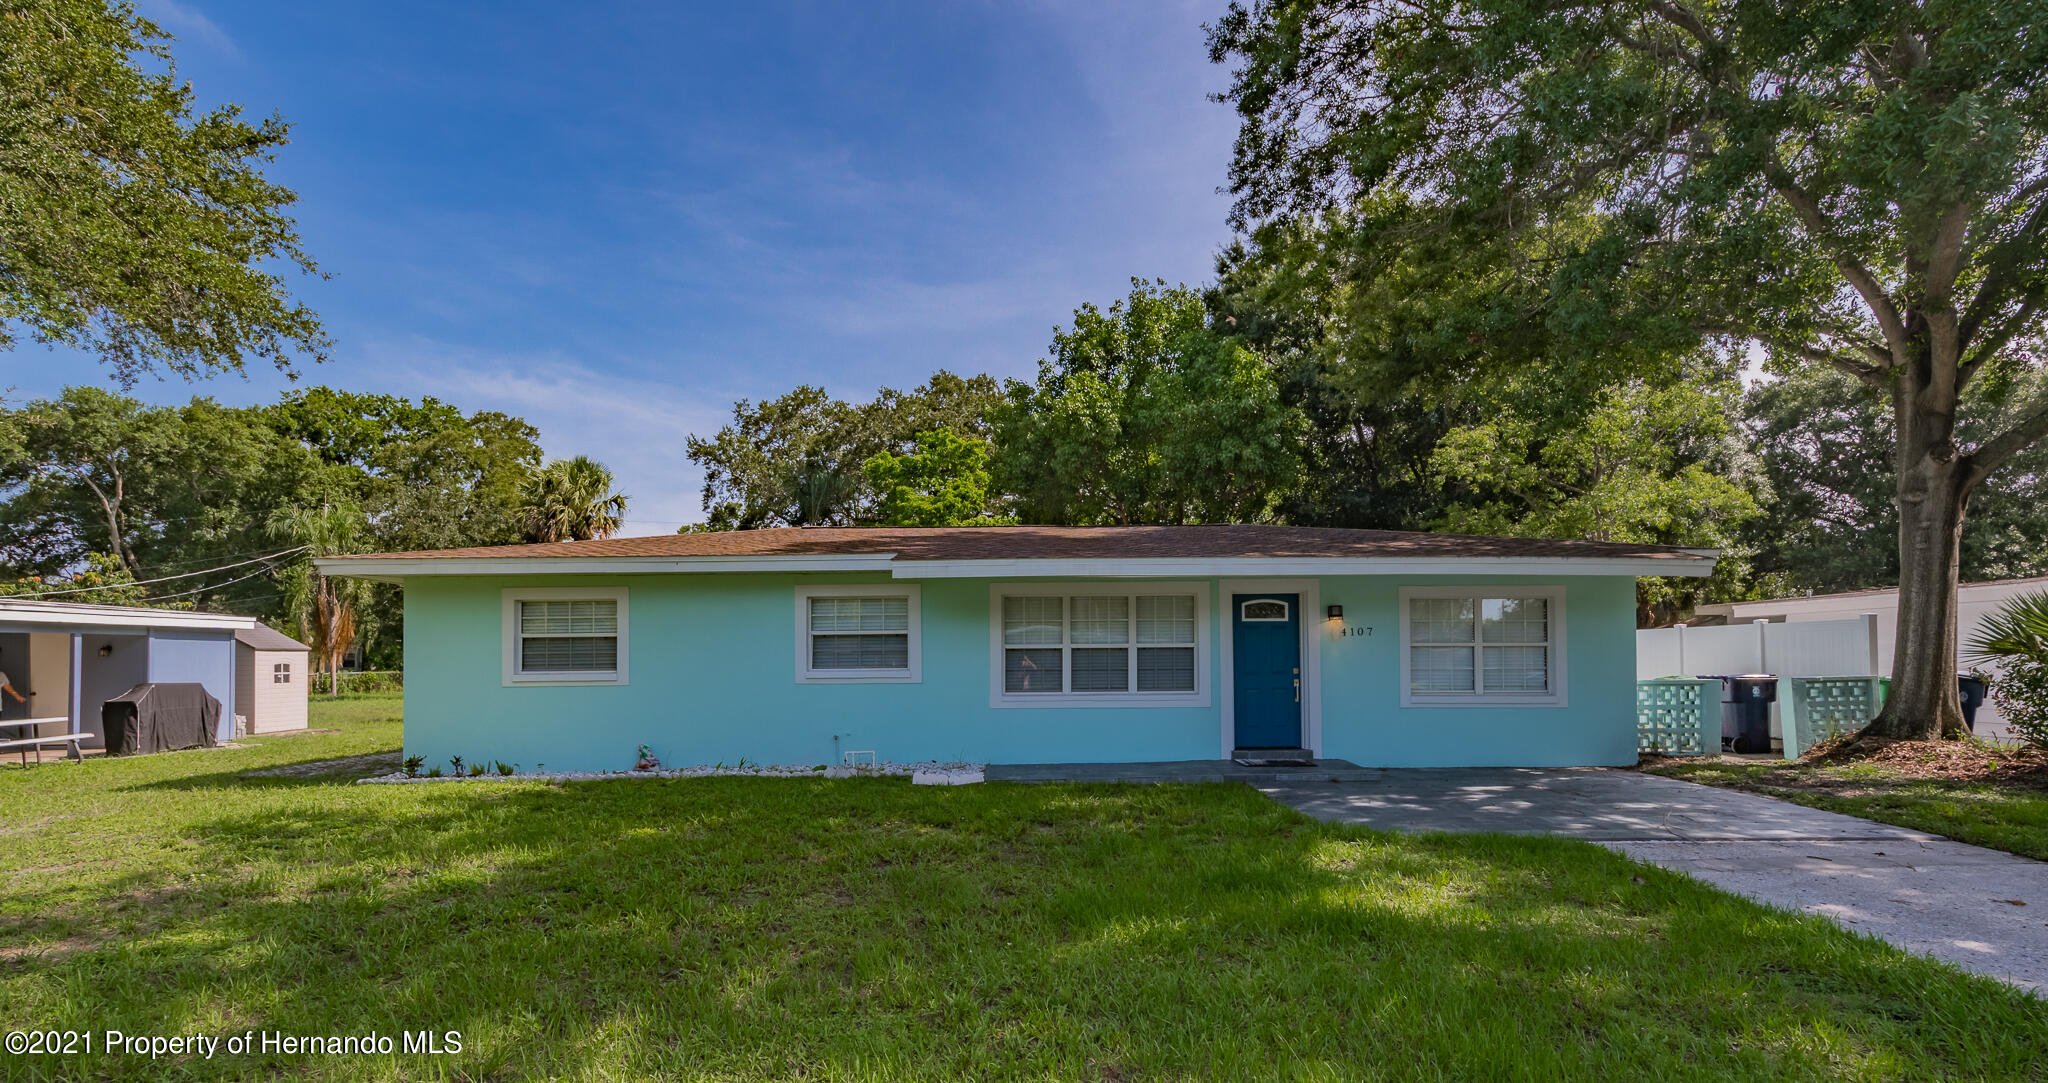 Details for 4107 W. Wisconsin Avenue, Tampa, FL 33616